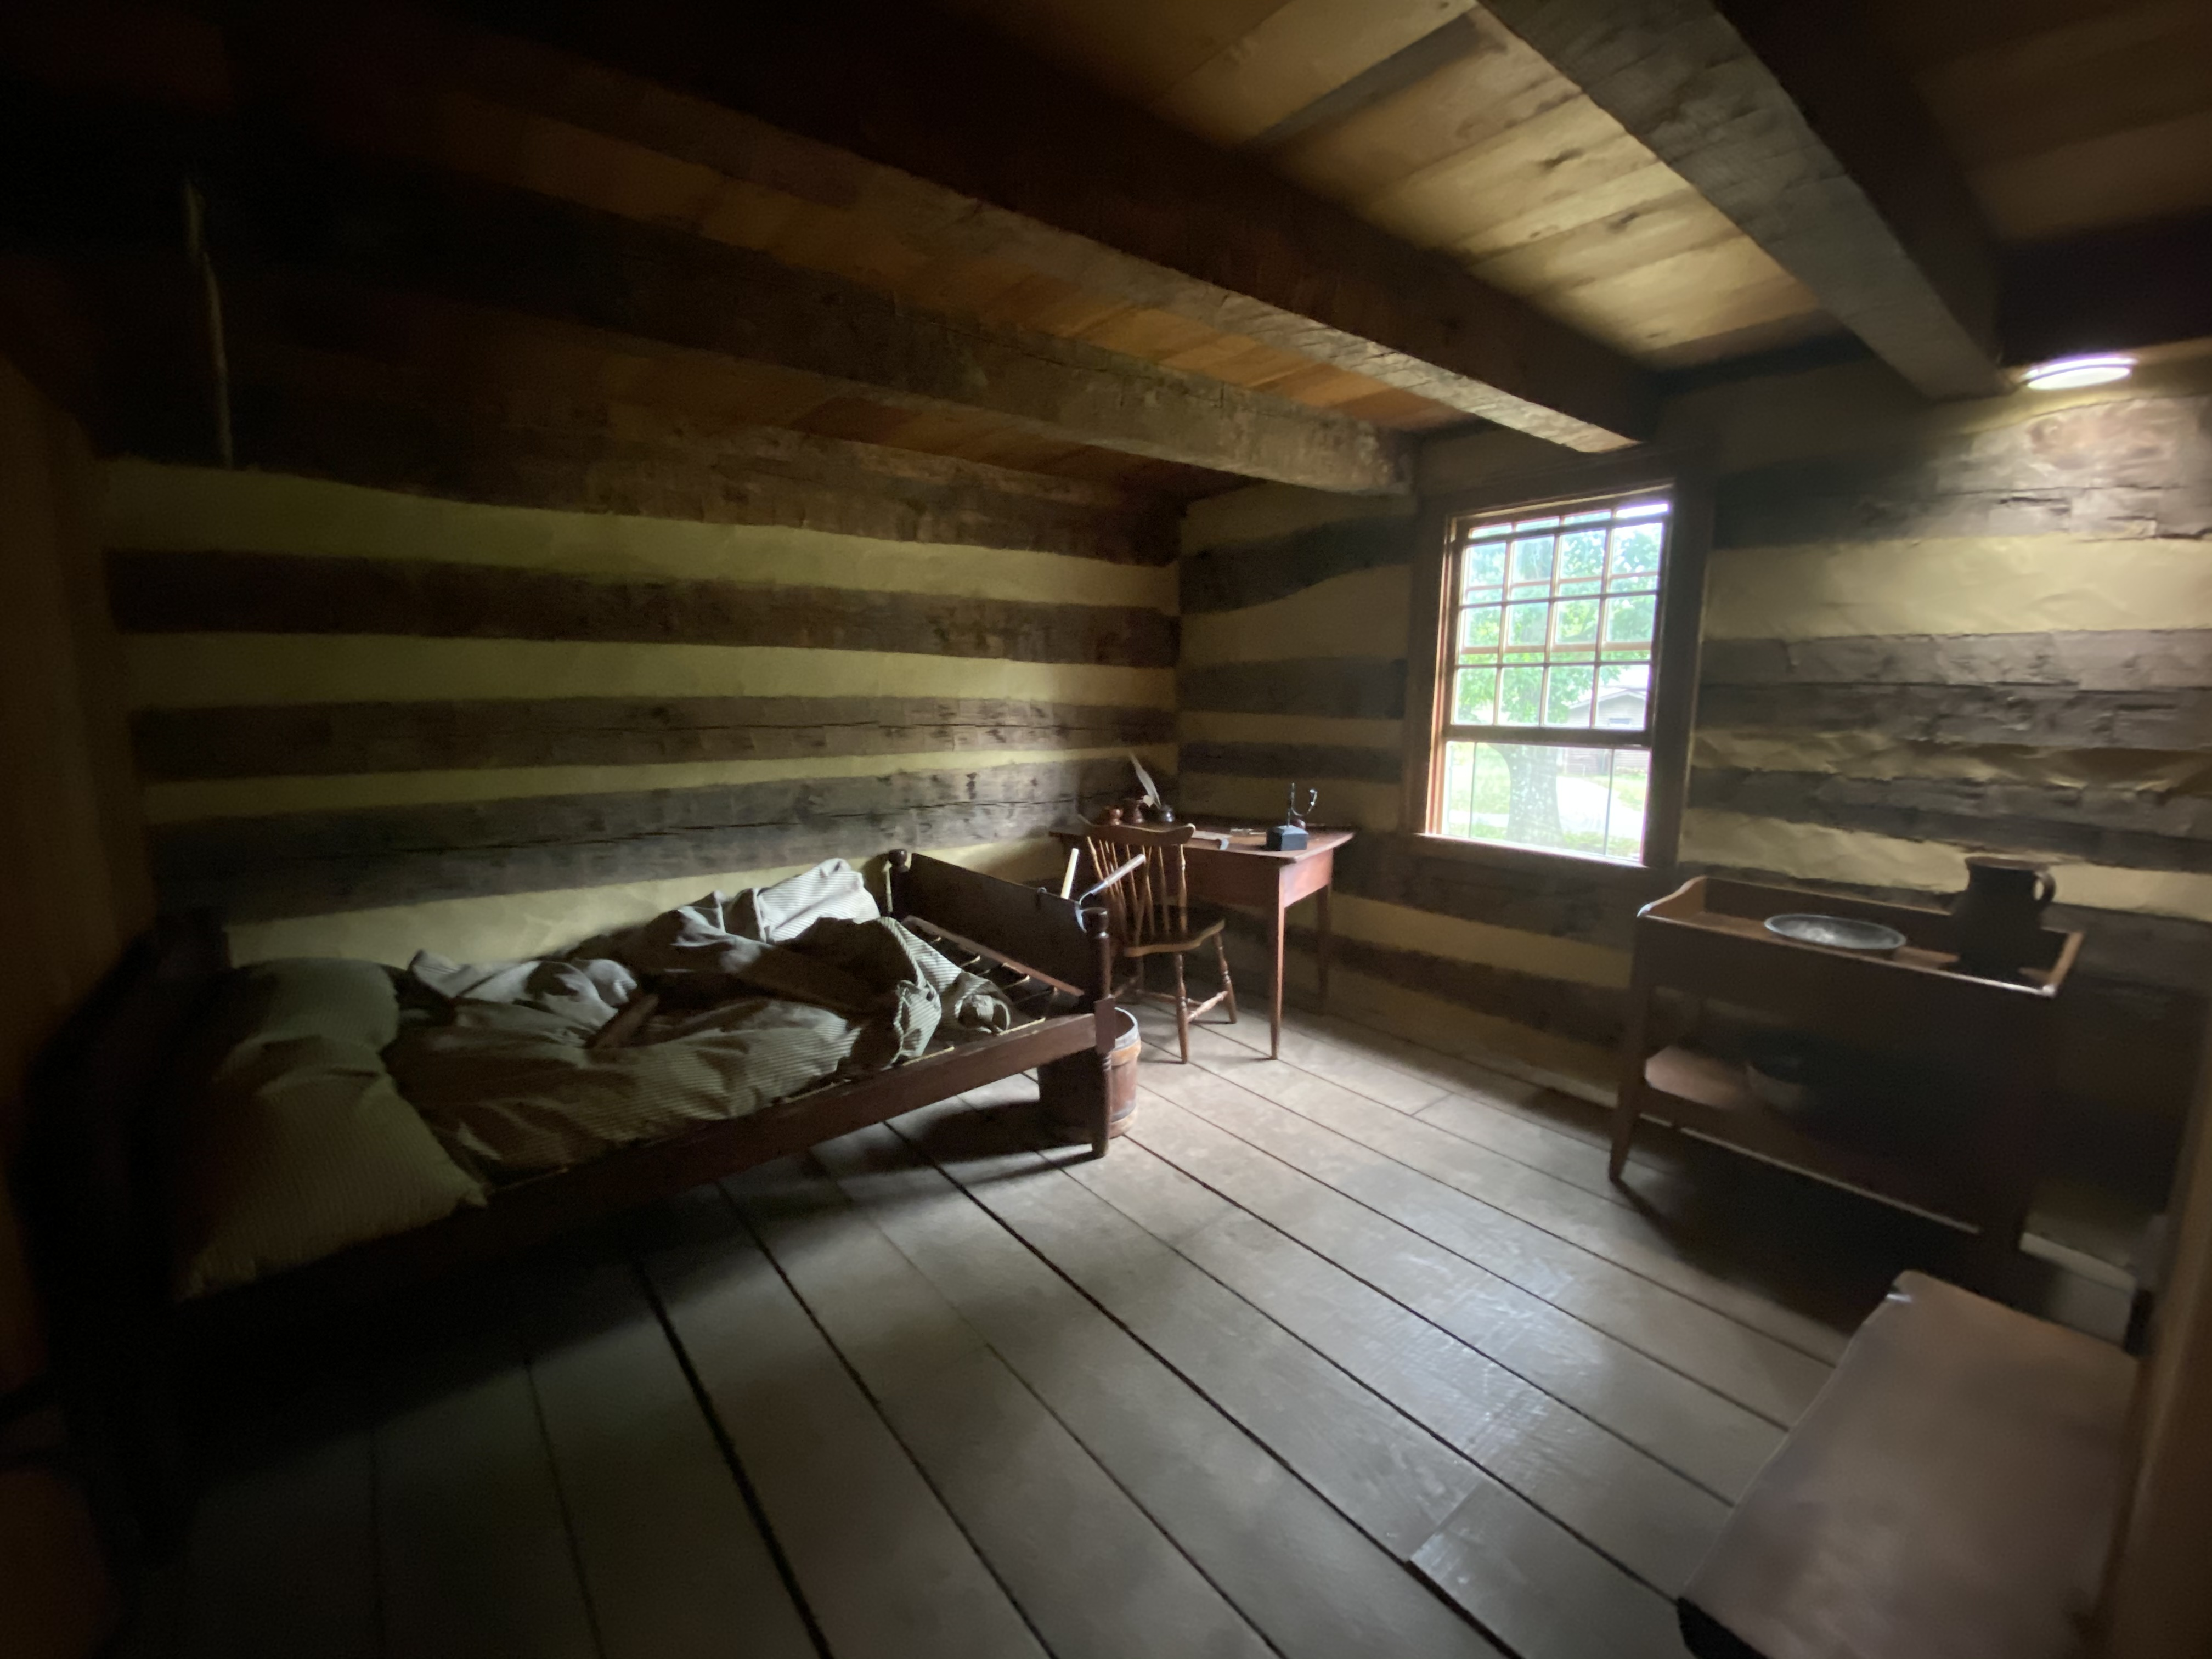 The guest bedroom of Hanna's Tavern